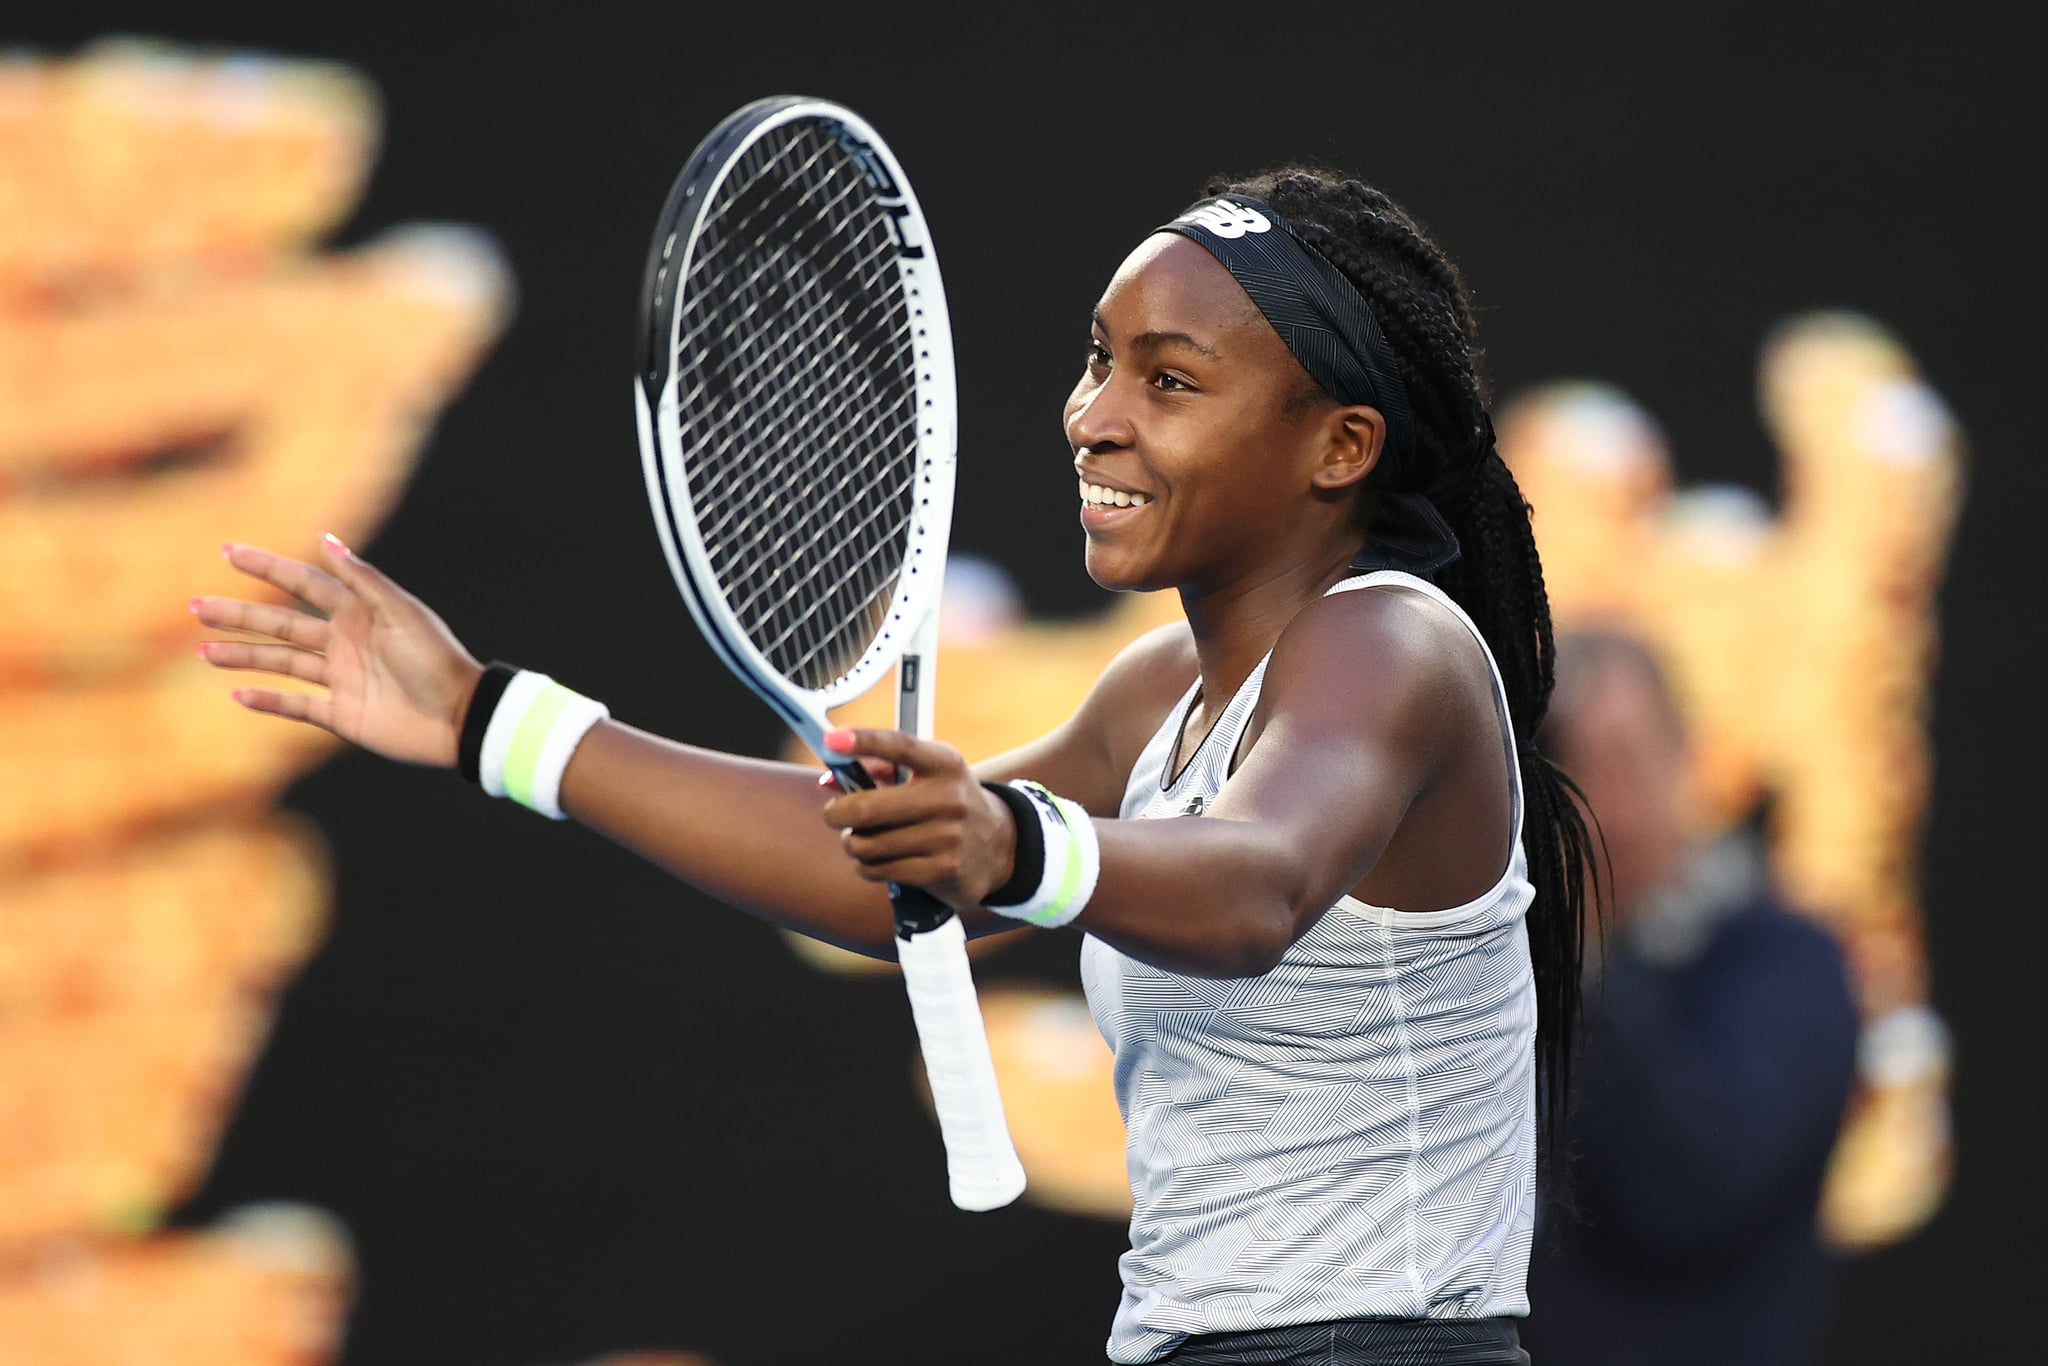 MELBOURNE, AUSTRALIA - JANUARY 24: Coco Gauff of the United States celebrates after winning her Women's Singles third round match against Naomi Osaka of Japan day five of the 2020 Australian Open at Melbourne Park on January 24, 2020 in Melbourne, Australia. (Photo by Hannah Peters/Getty Images)